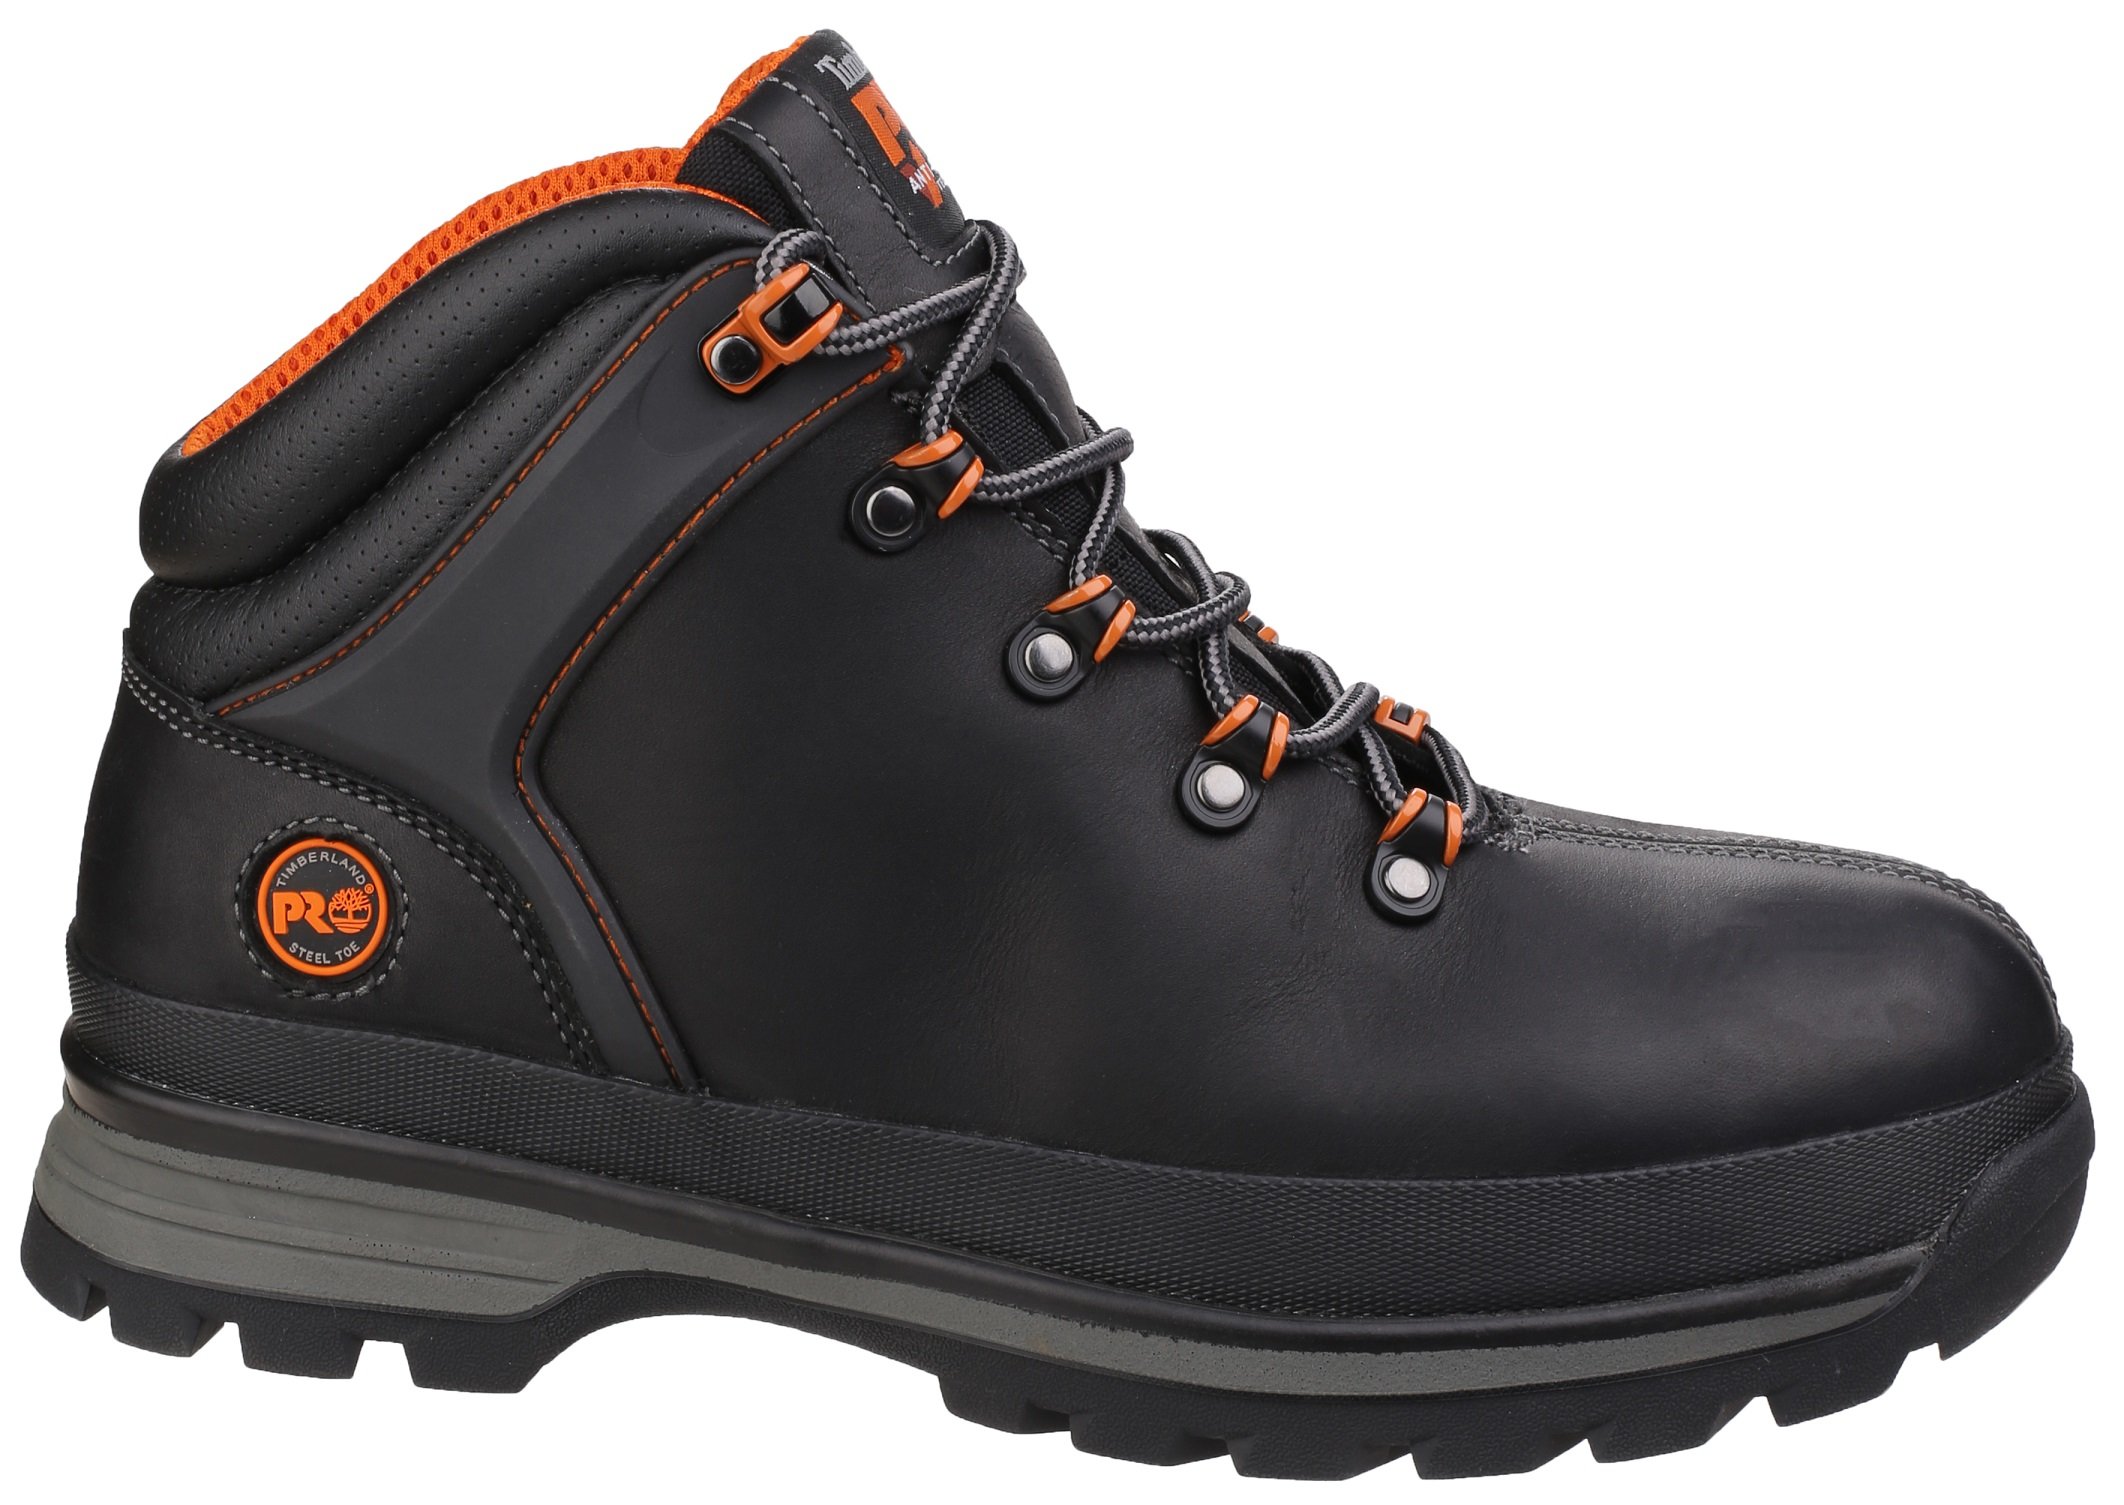 Sentinel Timberland Pro Split Rock Xt Safety Work Boots Black Gaucho Brown Or Wheat 4 14